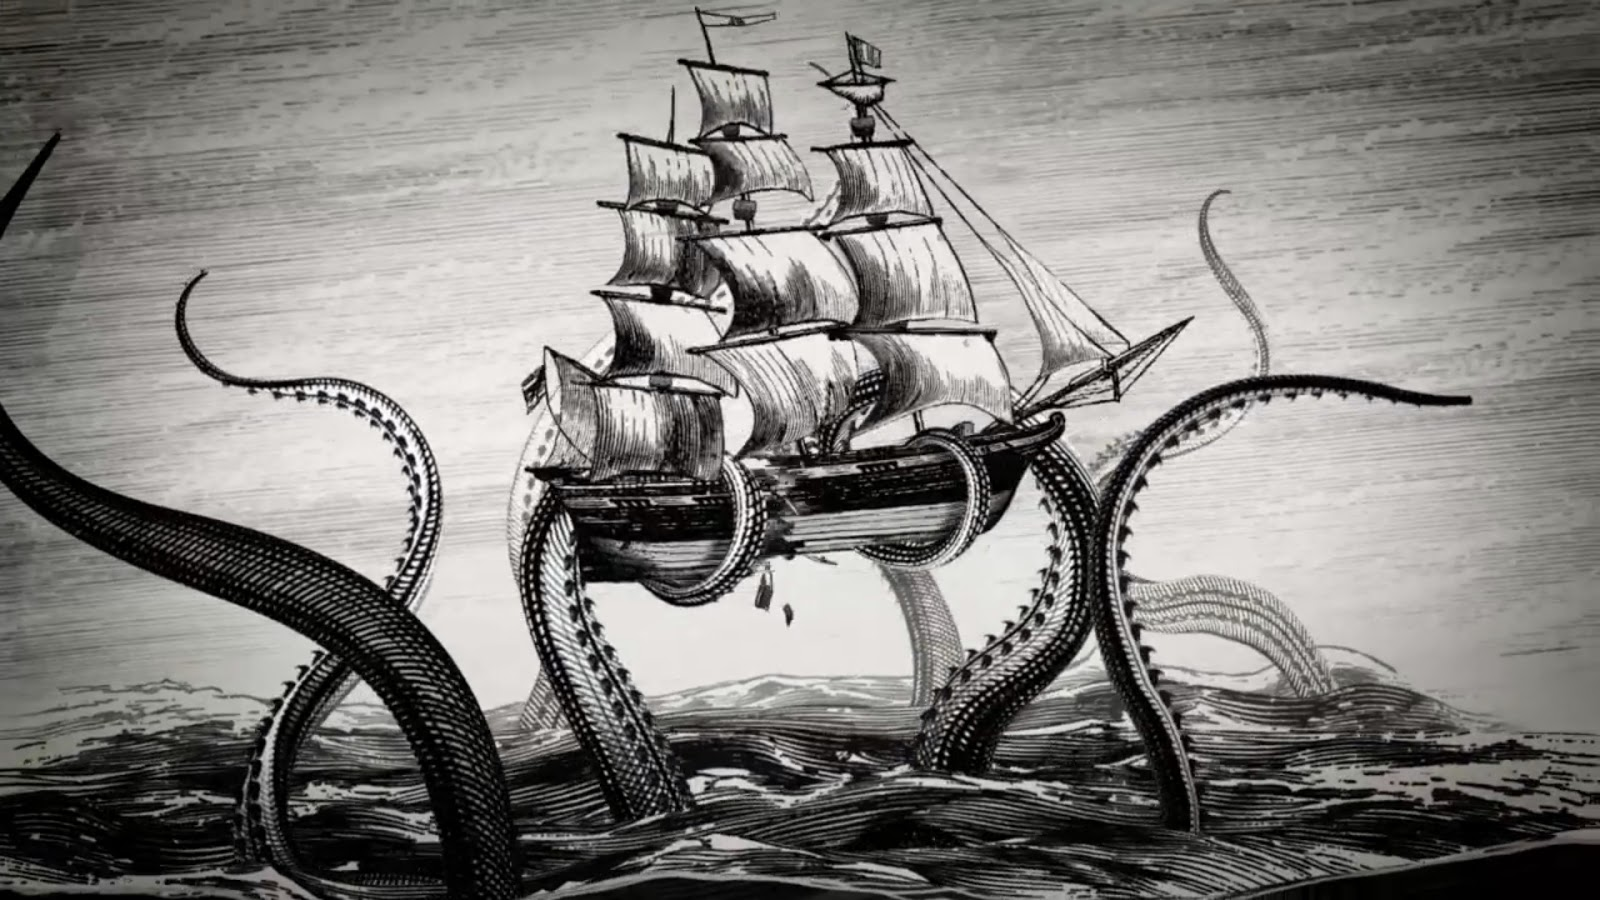 UFO SIGHTINGS DAILY 60 Meter Giant Squid Found On Google Earth The